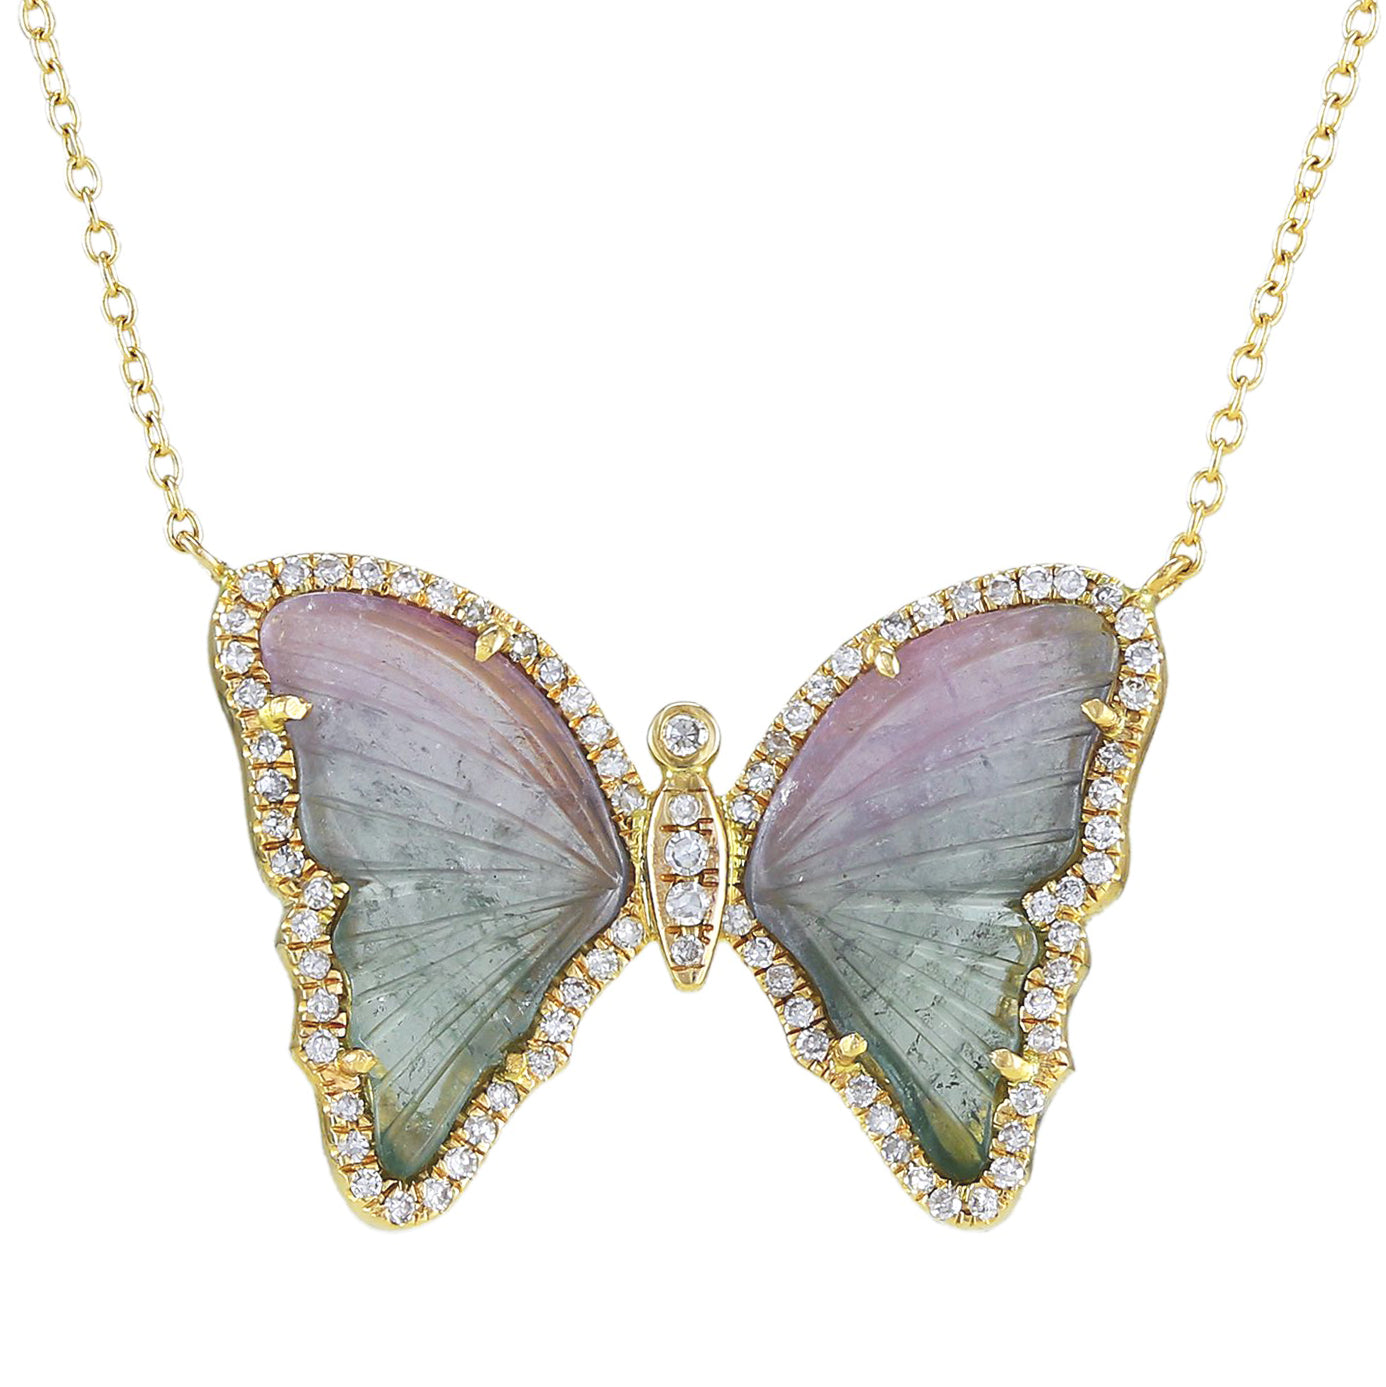 Mauve and Green Tourmaline Butterfly Necklace With Diamonds